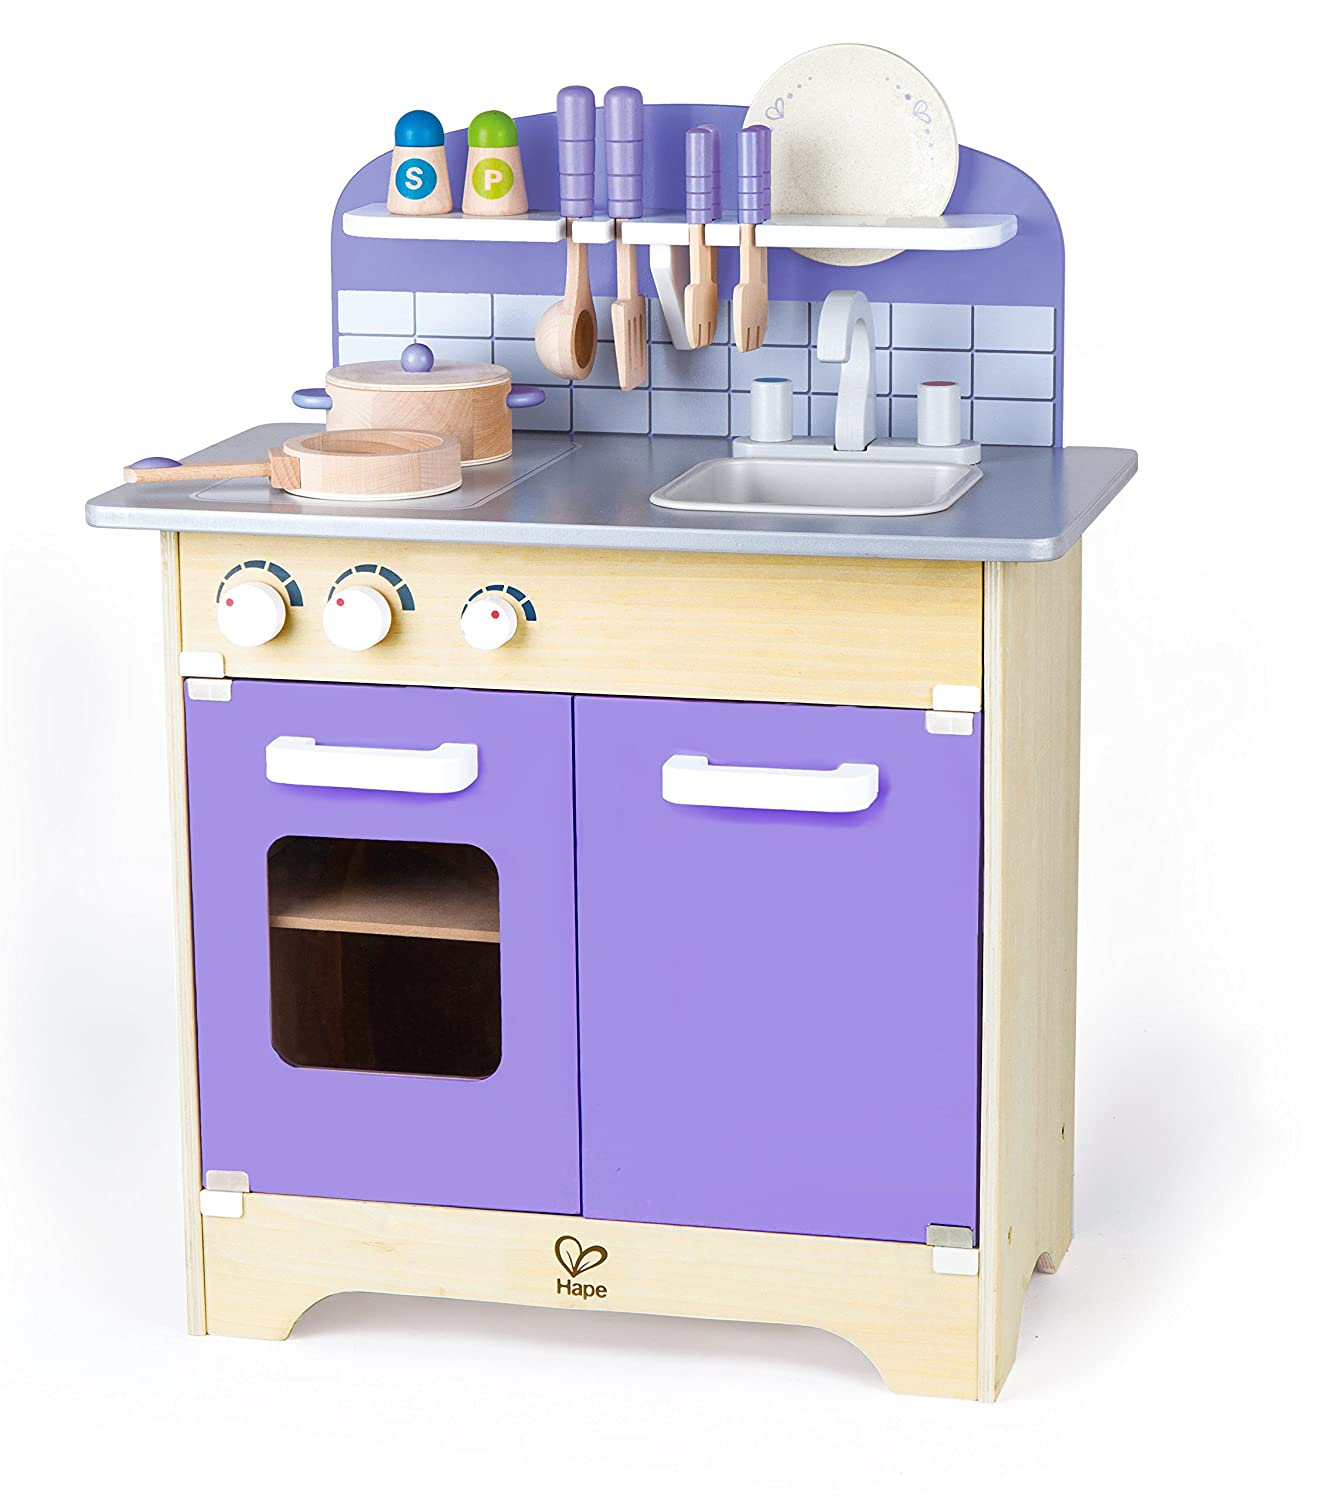 Hape wooden kitchen play set toy for kids with deluxe for Kitchen set toys amazon